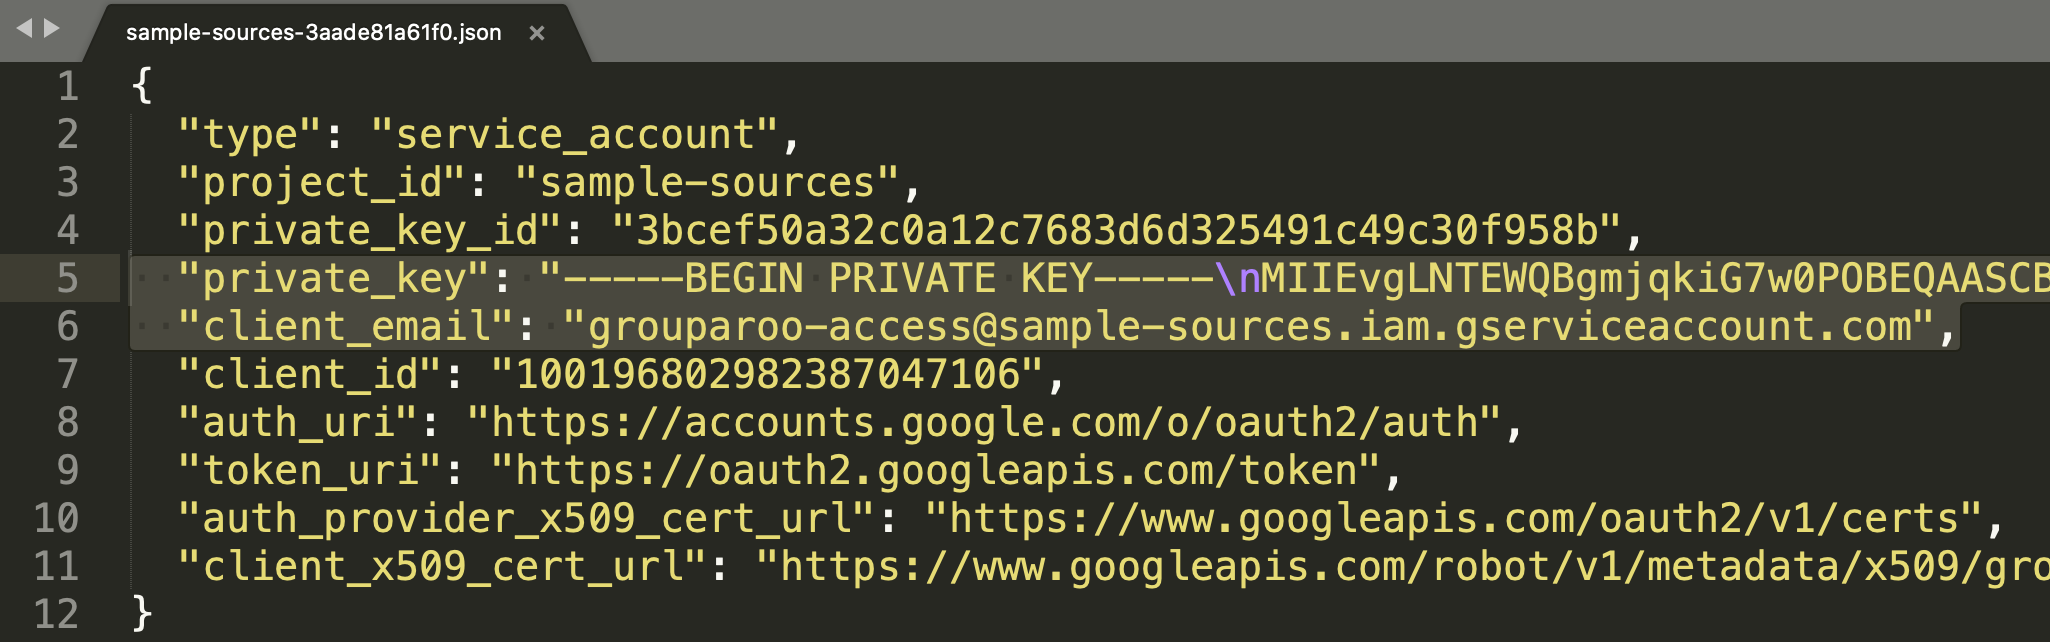 JSON for a Google Service Account key